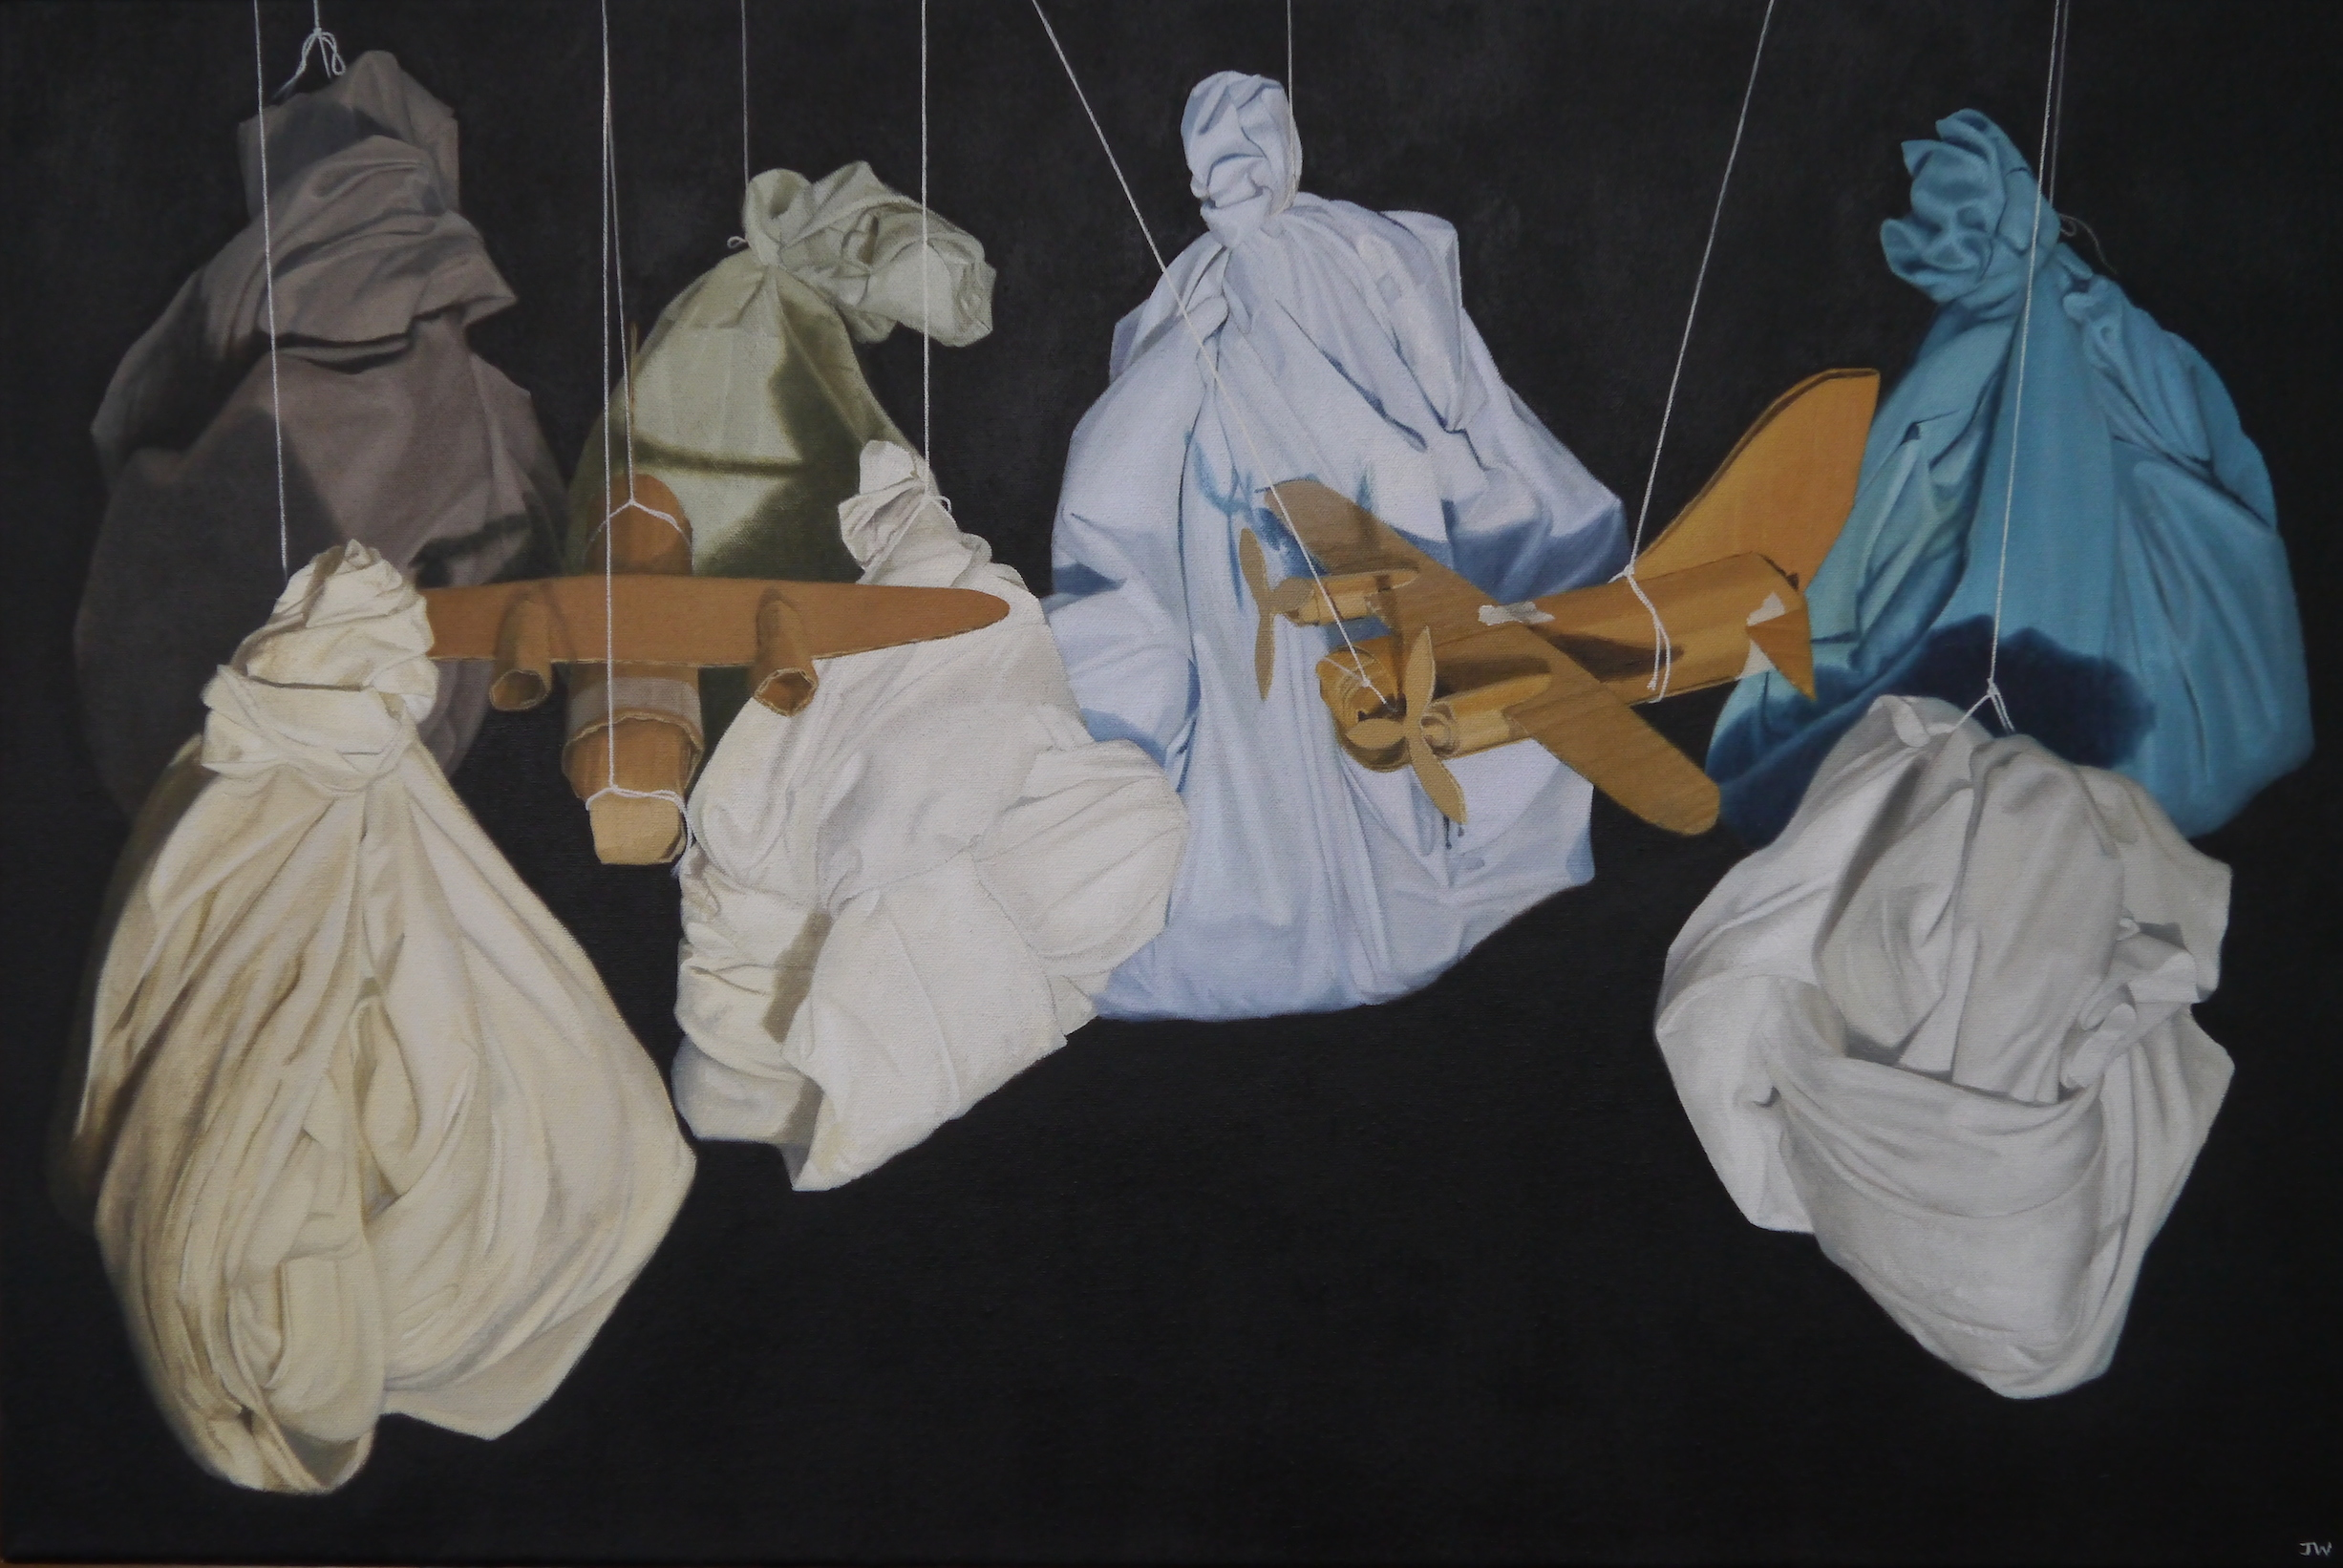 John Whitehill, Left Hanging IV, Oils on canvas, 75 x 50 x 4,  http://johnwhitehill.co.uk